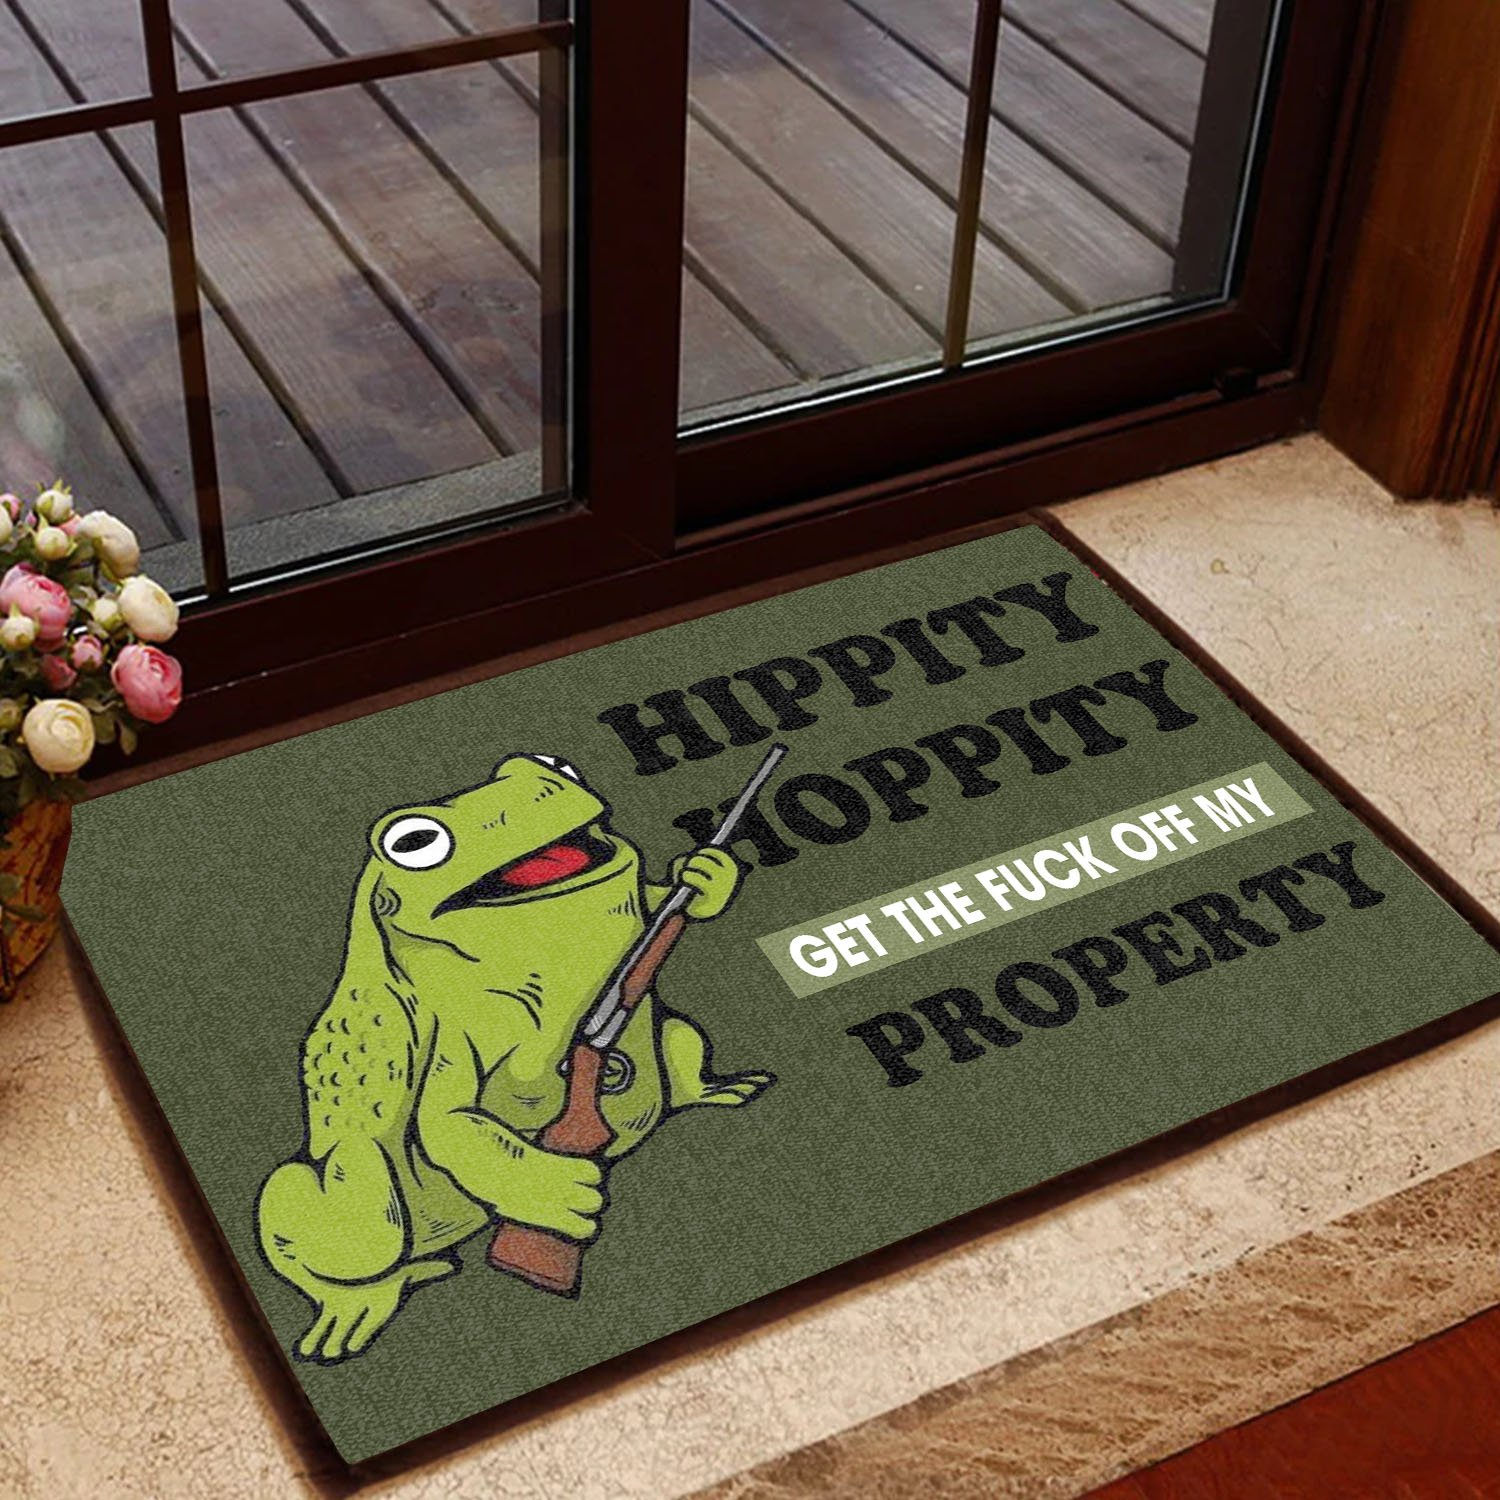 Hippity Hoppity Get Off My Property Frog With The Gun Doormat The Limited Edition Listen to hippity hoppity now. hippity hoppity get off my property frog with the gun doormat the limited edition